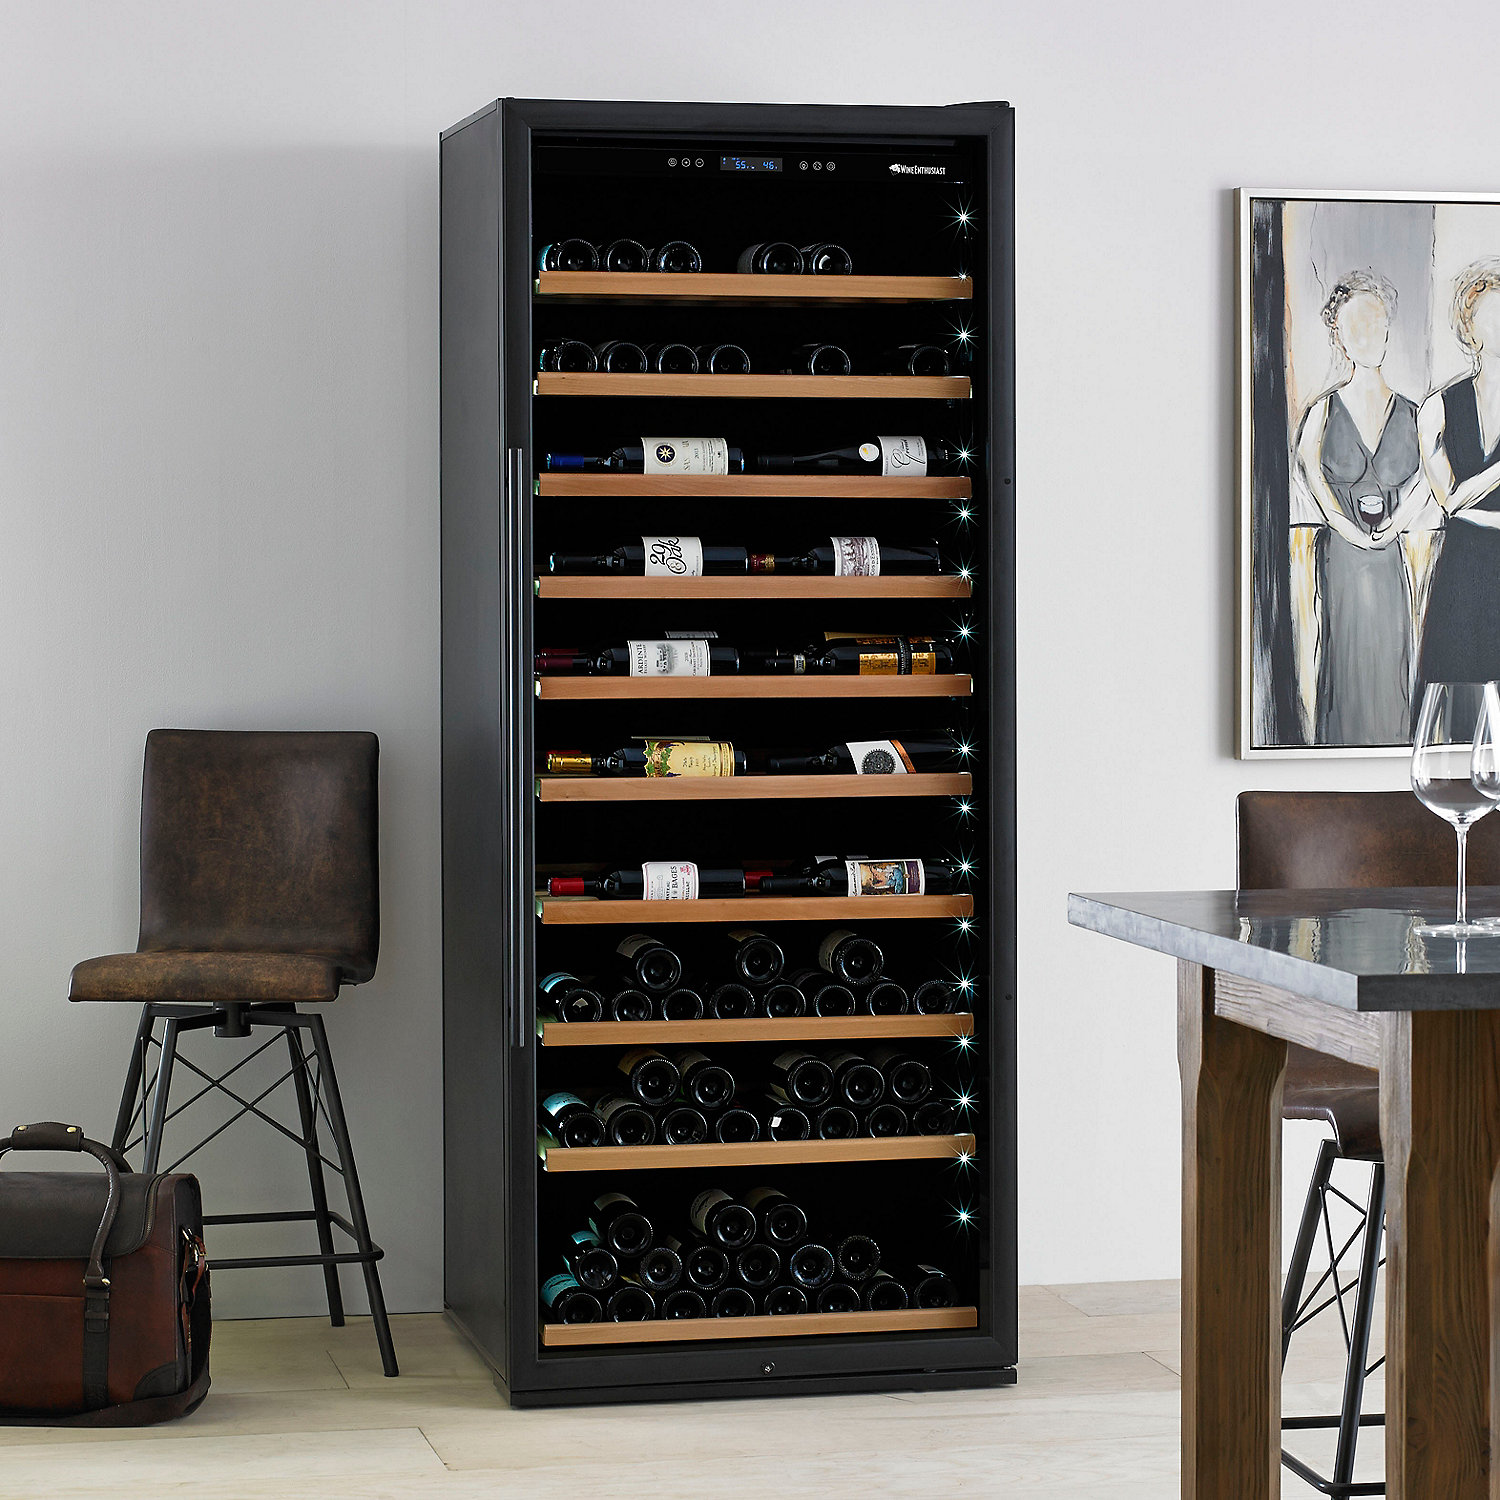 Under cabinet plate rack plans free - Classic Xl 300 Bottle Wine Cellar With Vinoview Shelving